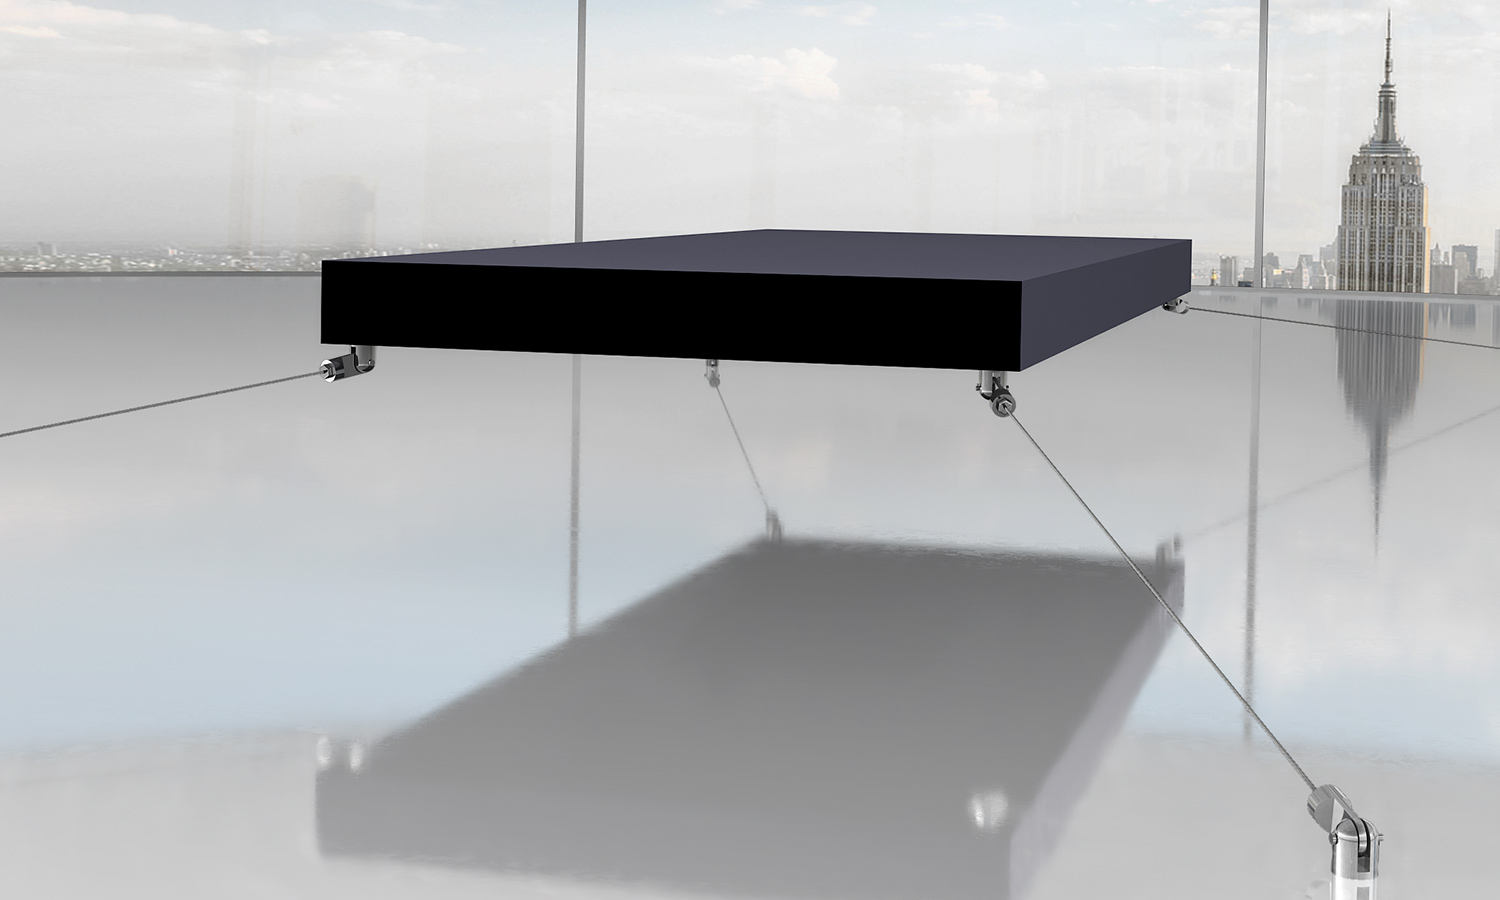 A bed floats off of the ground by use of magnets